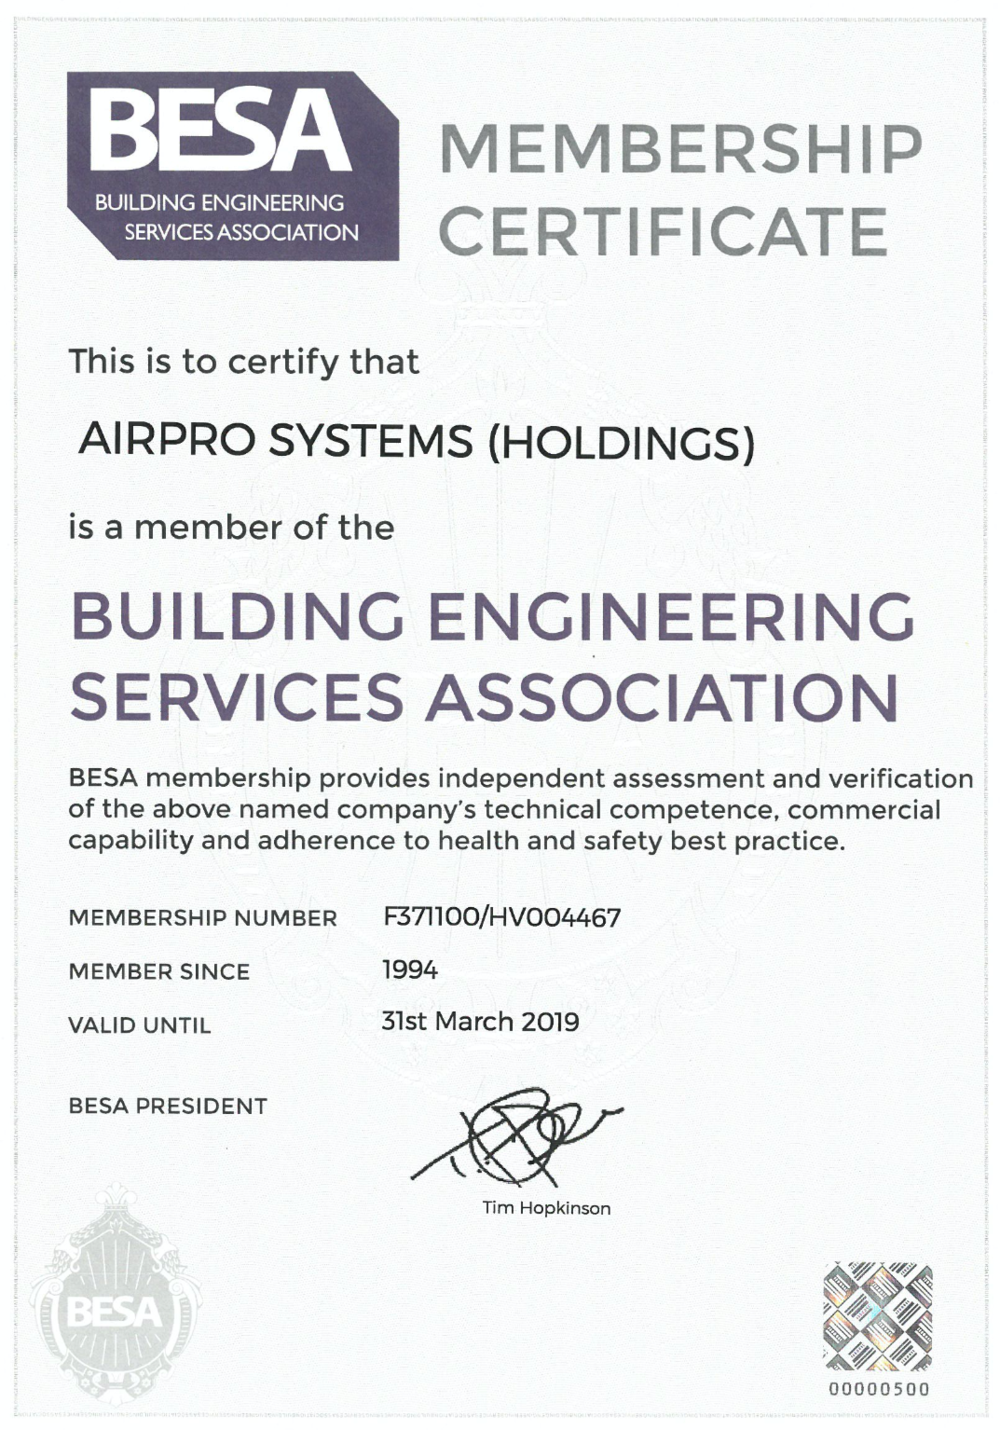 BESA Certificate  Click image to open